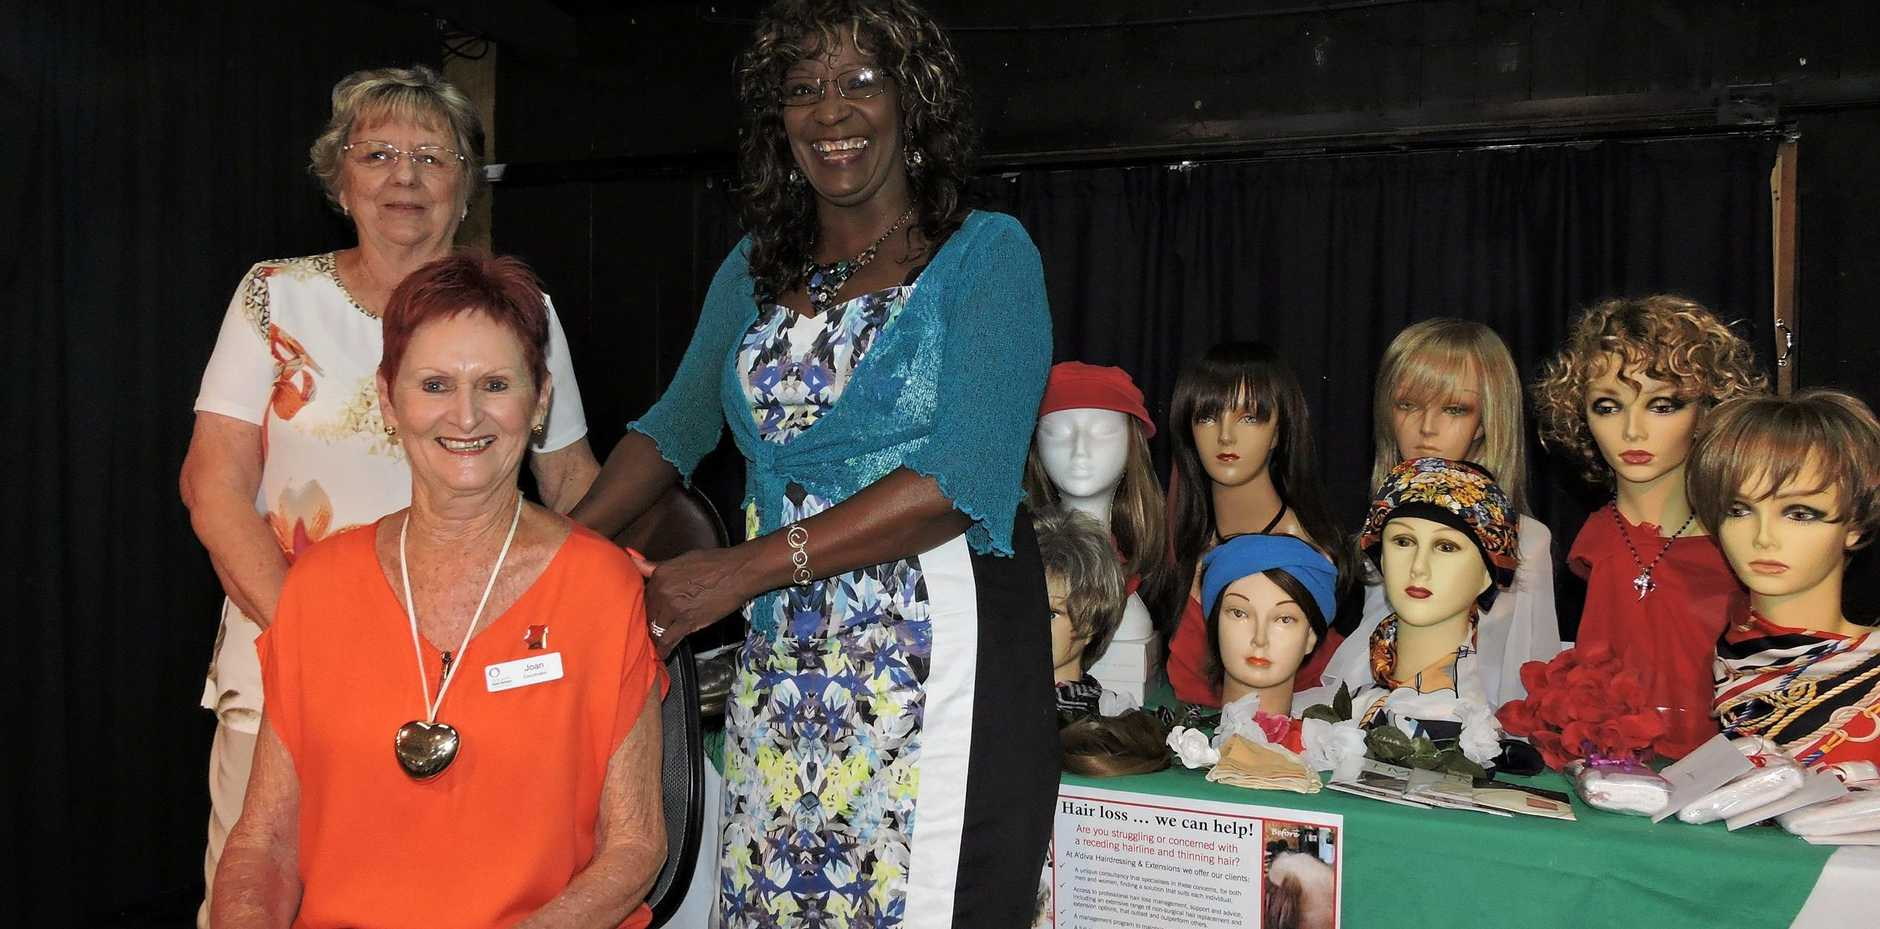 ABOVE: Look Good Feel Better morning tea fundraiser organisers (from left) Joy Davies and Joan Boge with Lynn Arbus, owner of A'Diva Hair & Extension Centre, who demonstrated some of the wig and hair replacement options available to cancer patients.